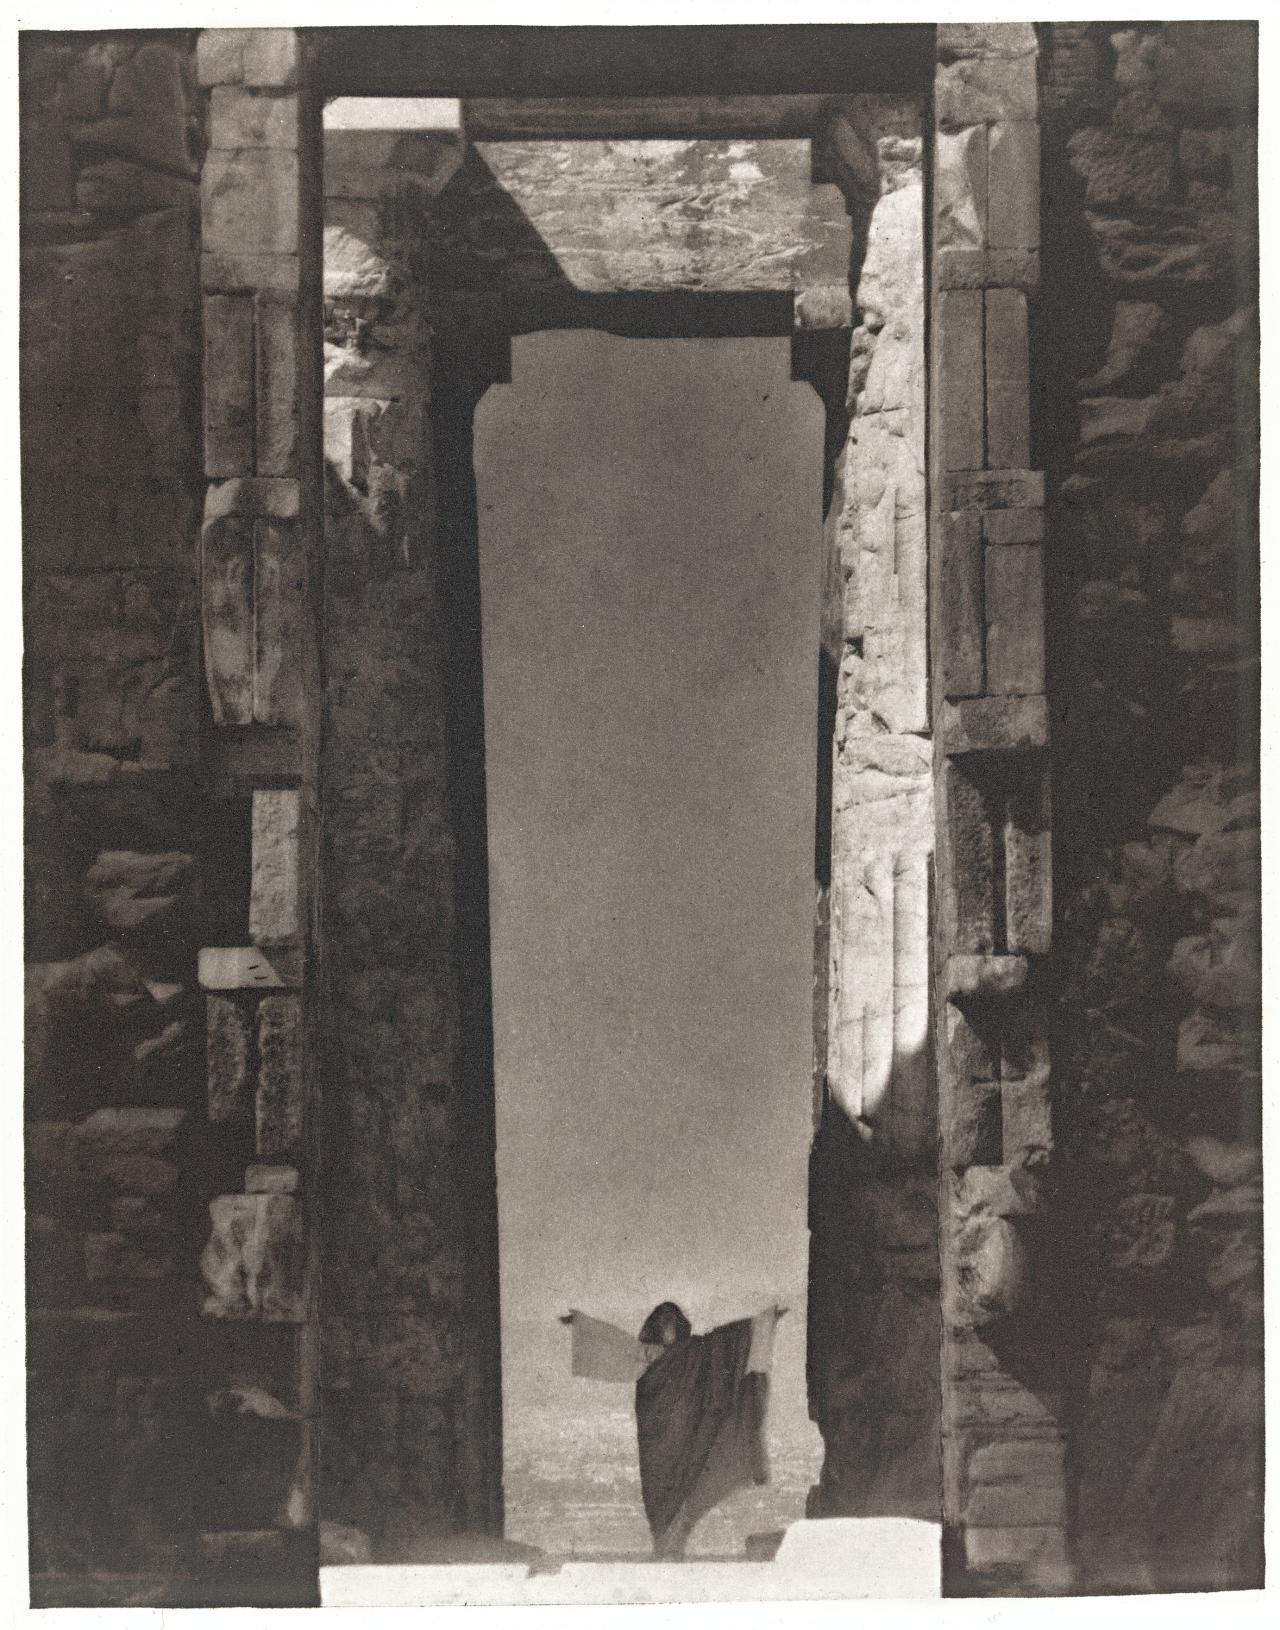 Isadora Duncan at the portal of the Parthenon